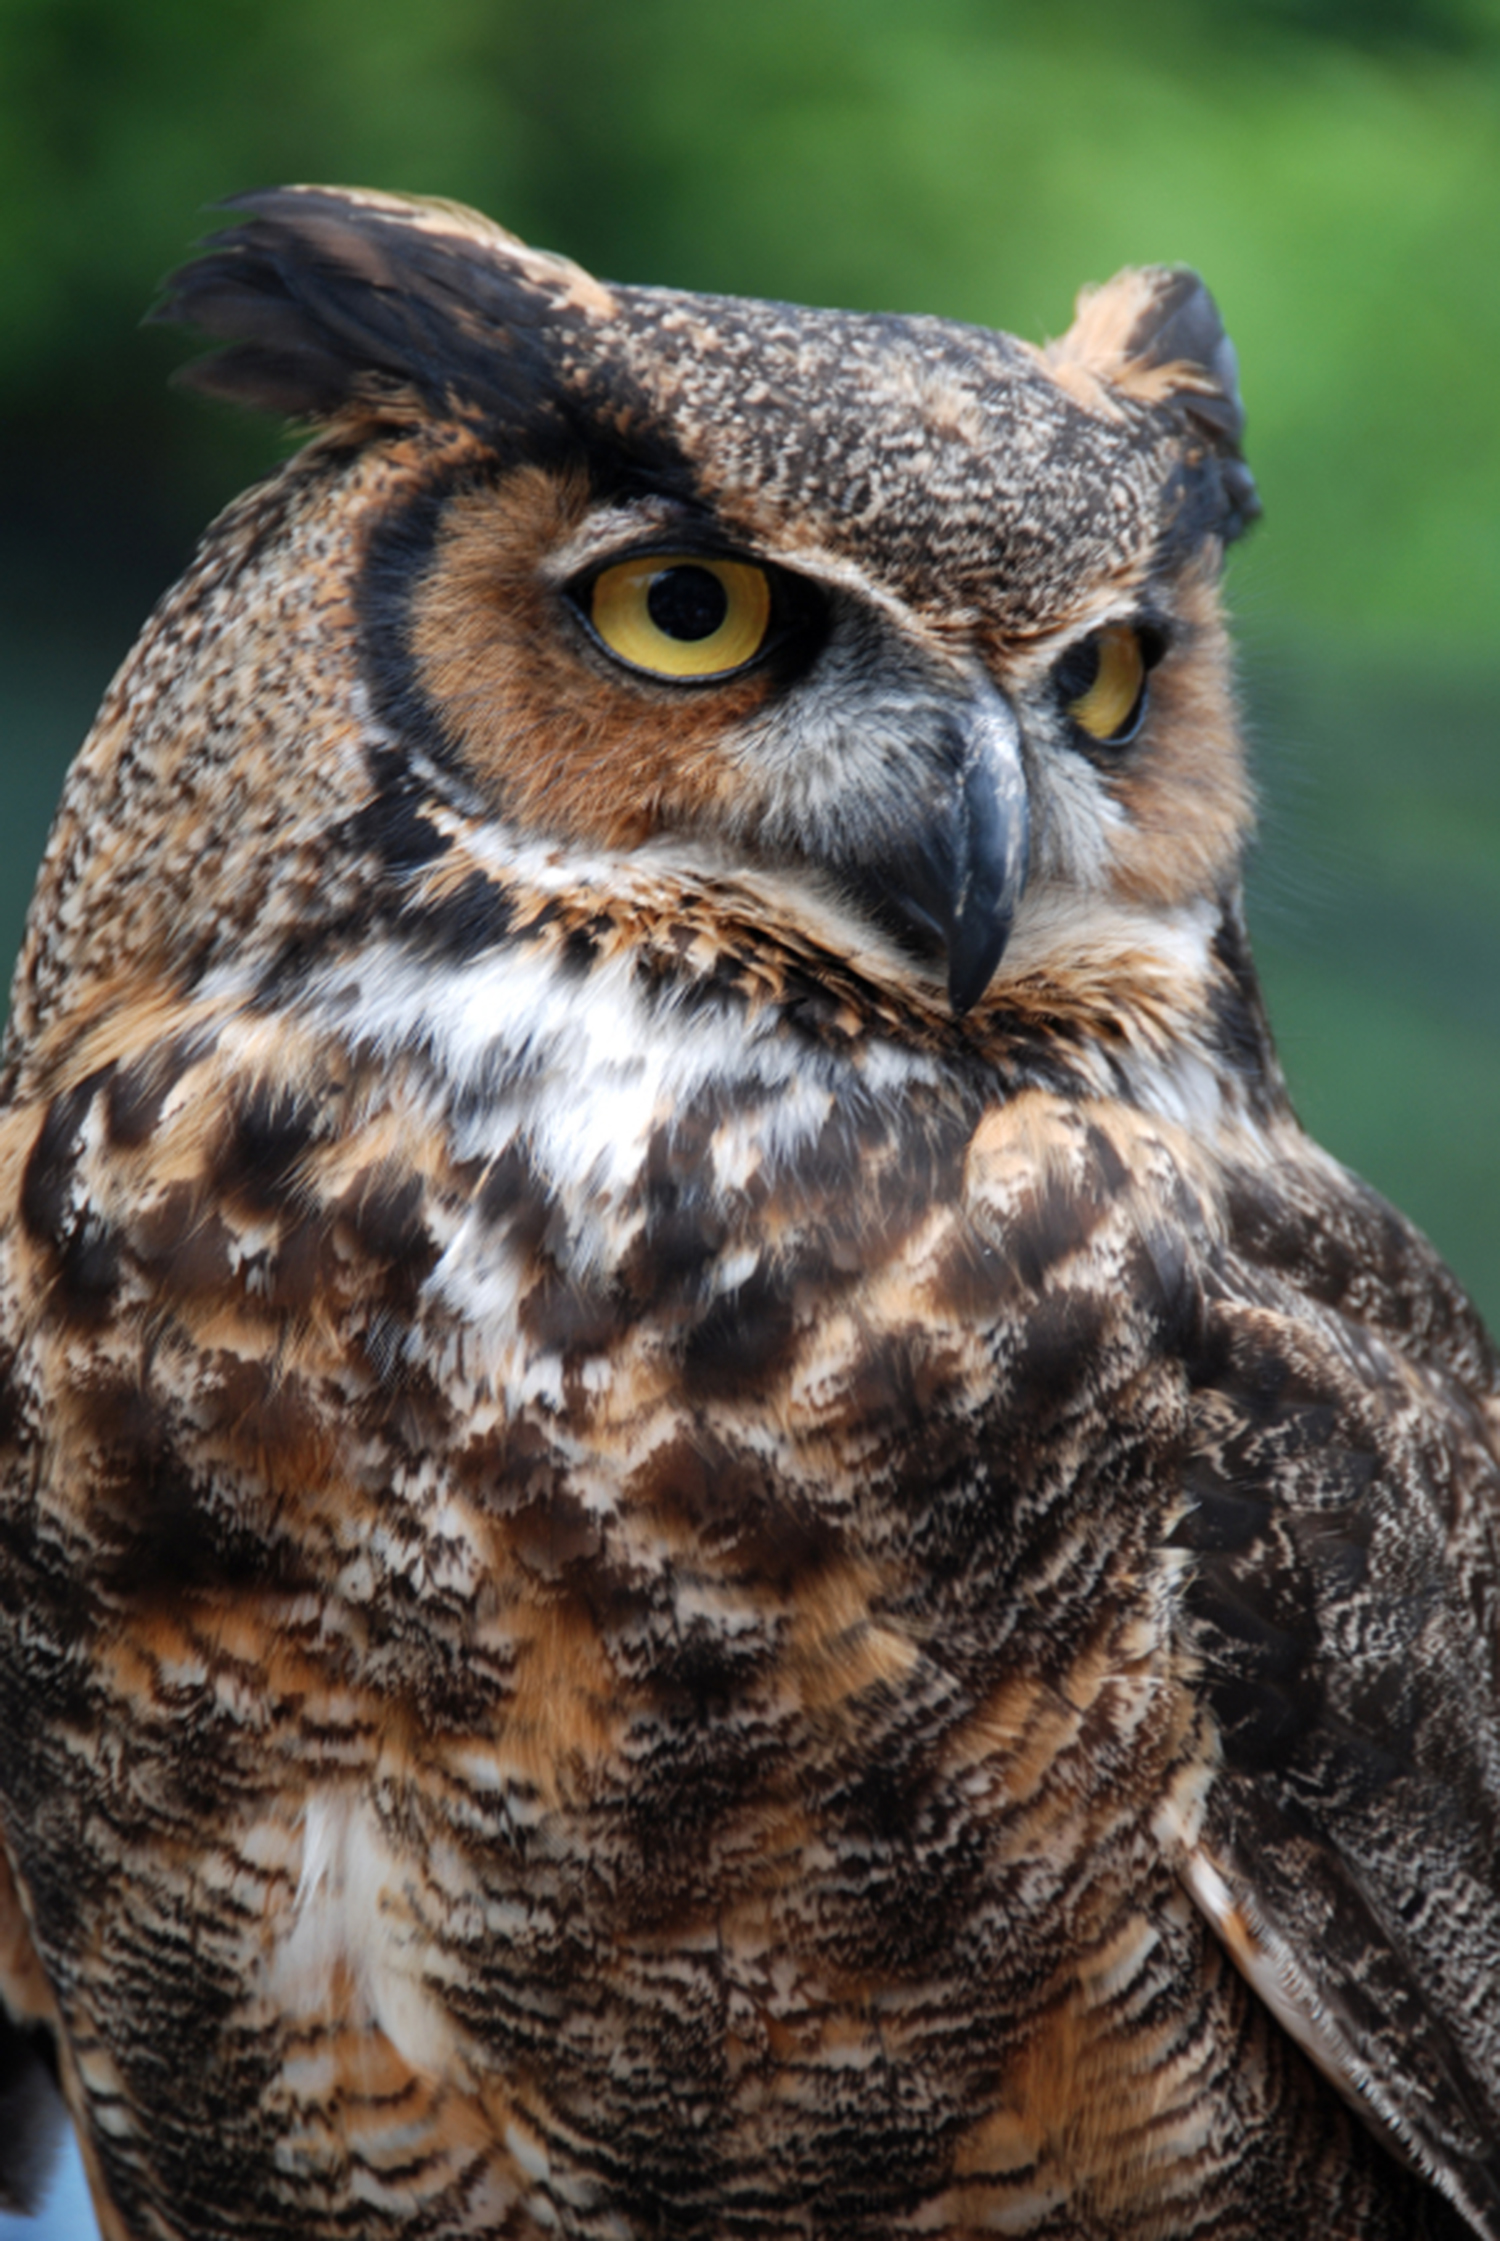 Owls bring mystery, plus rodent control | Mississippi ...